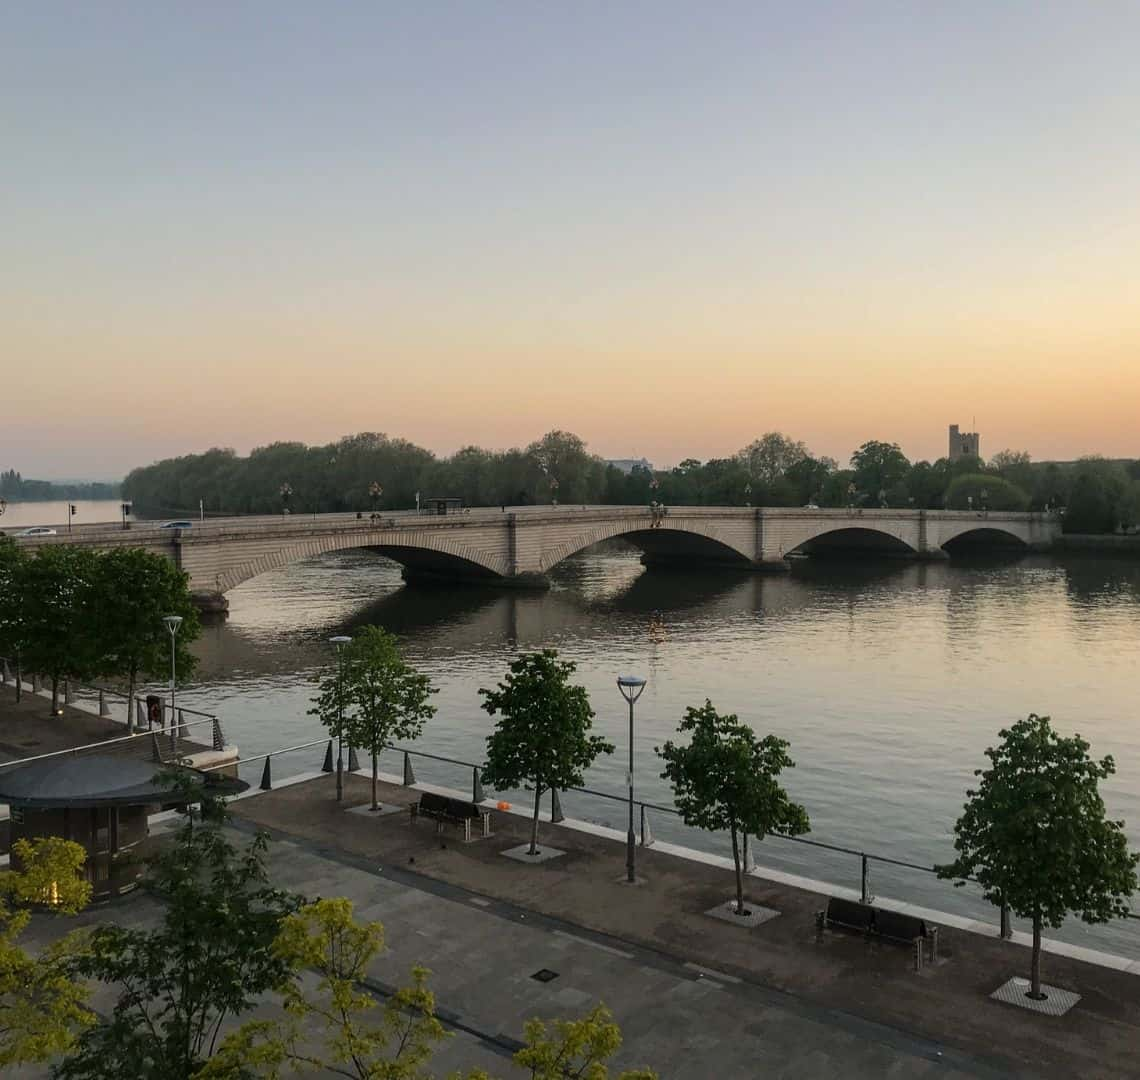 The sun is setting and teh sky is a variety of pastel oranges and pinks behind Putney Bridge with the tide in. There are some trees and benches on the pathway in the foreground